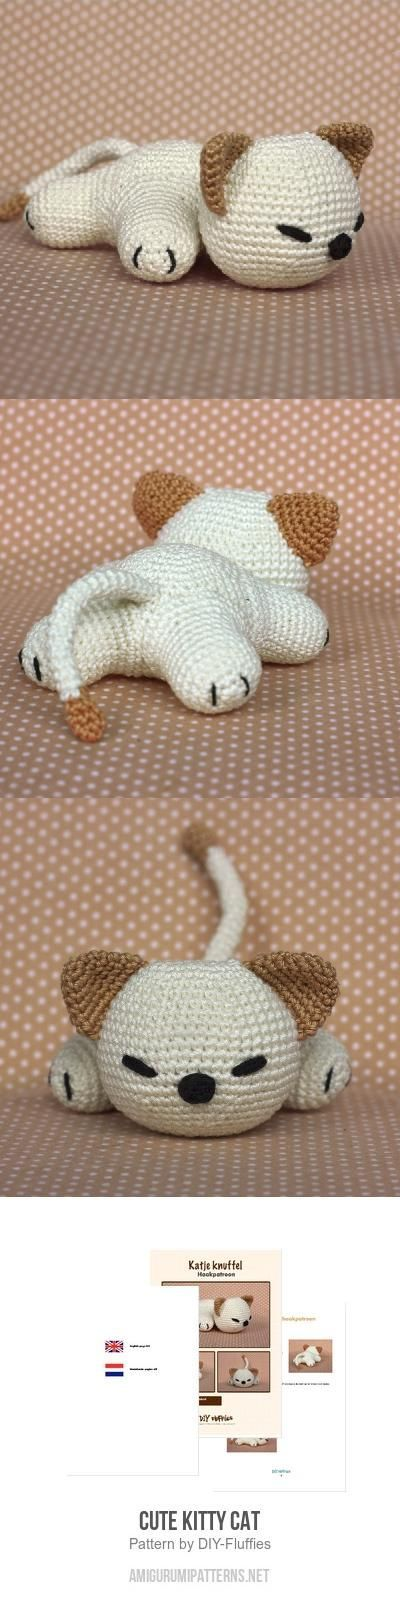 Cute Kitty Cat amigurumi pattern by DIY Fluffies